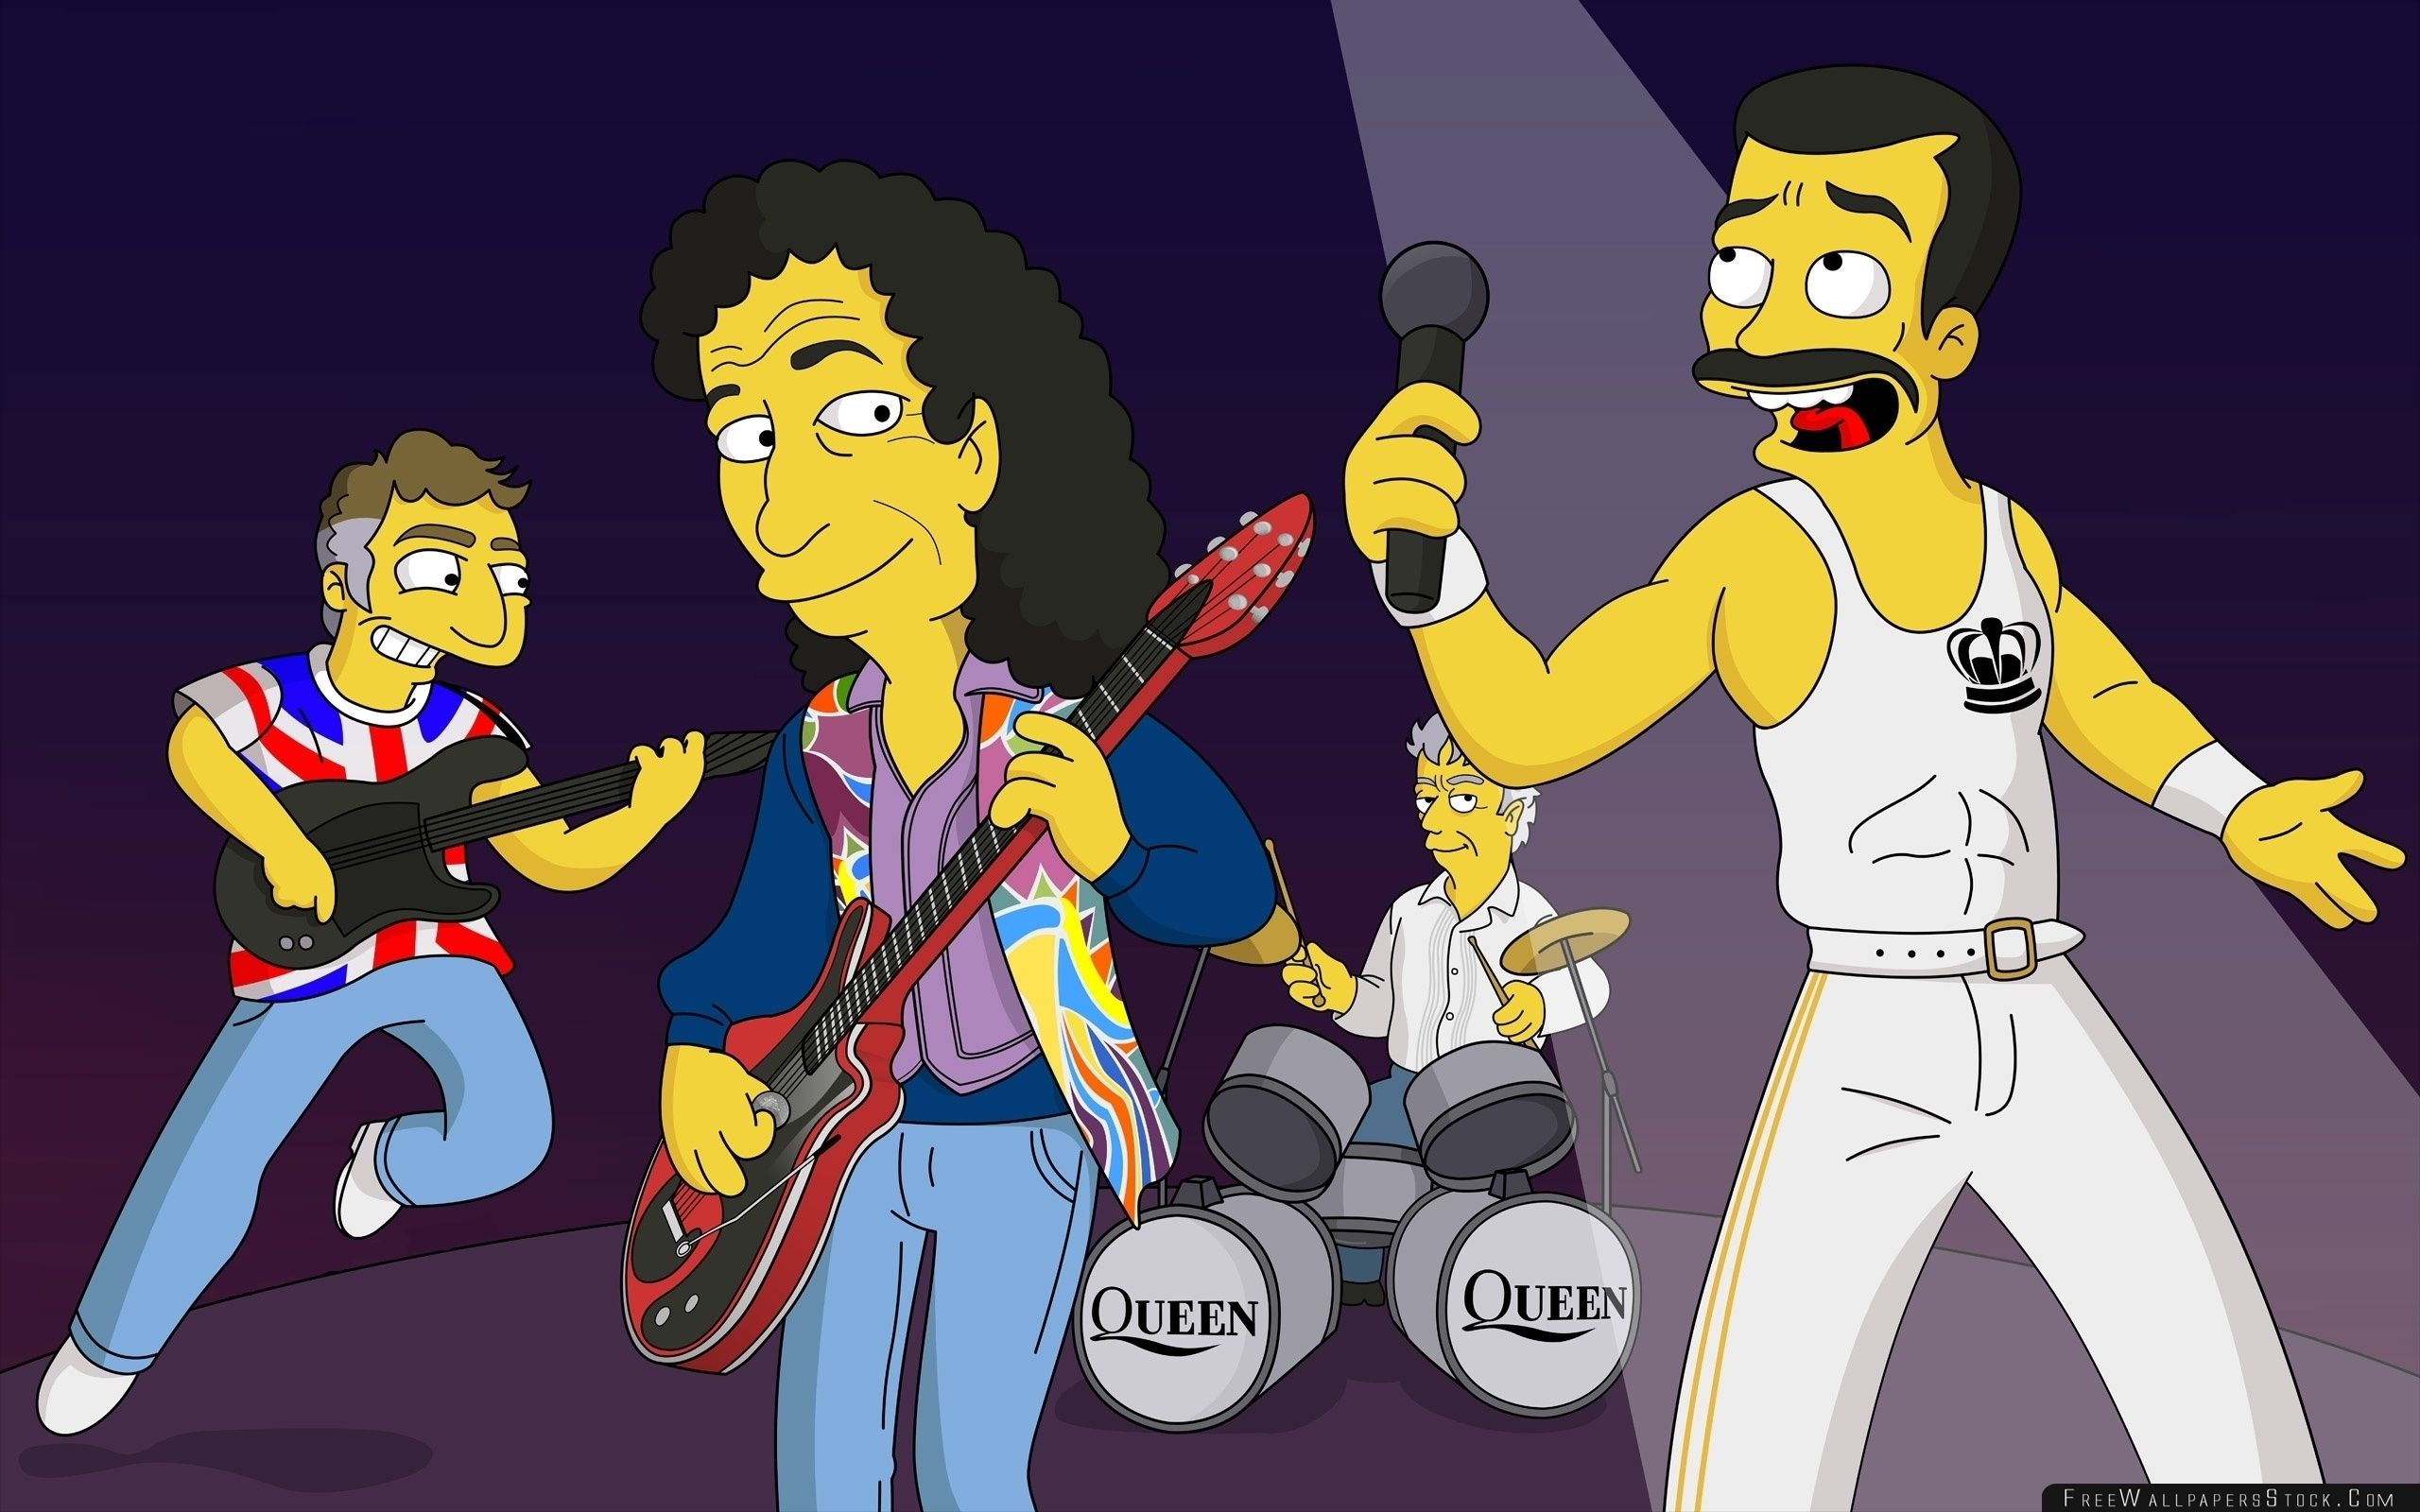 Download Free Wallpaper Queen Band Cartoon